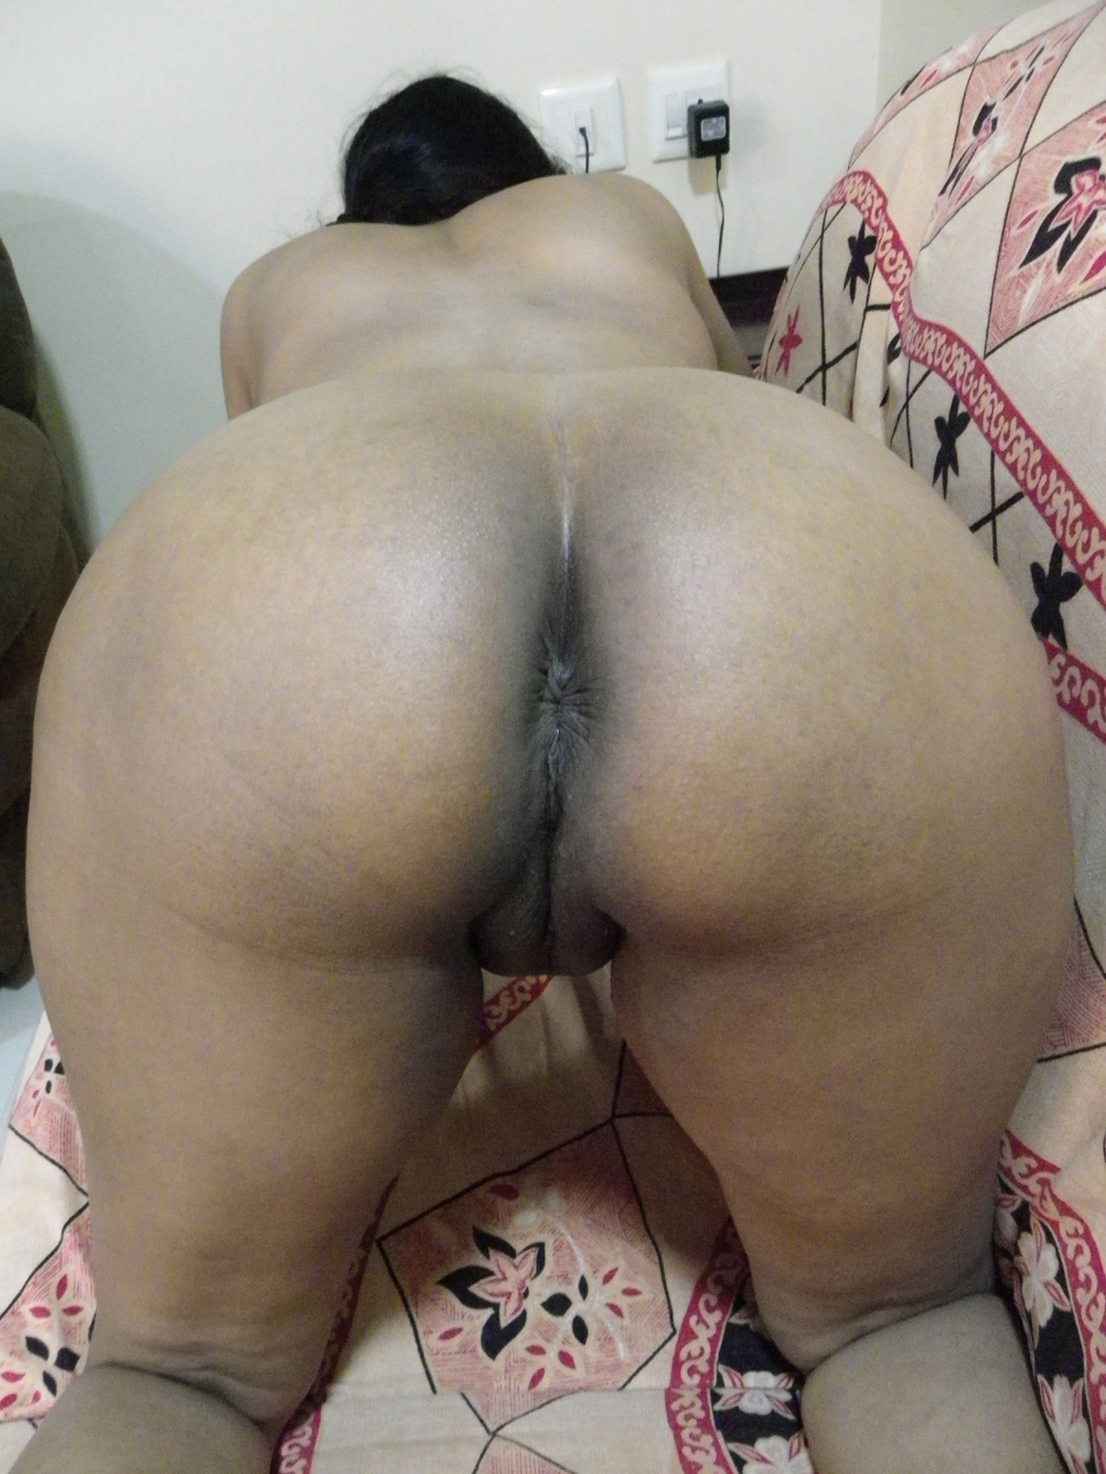 from Marley porn punjabi girls ass